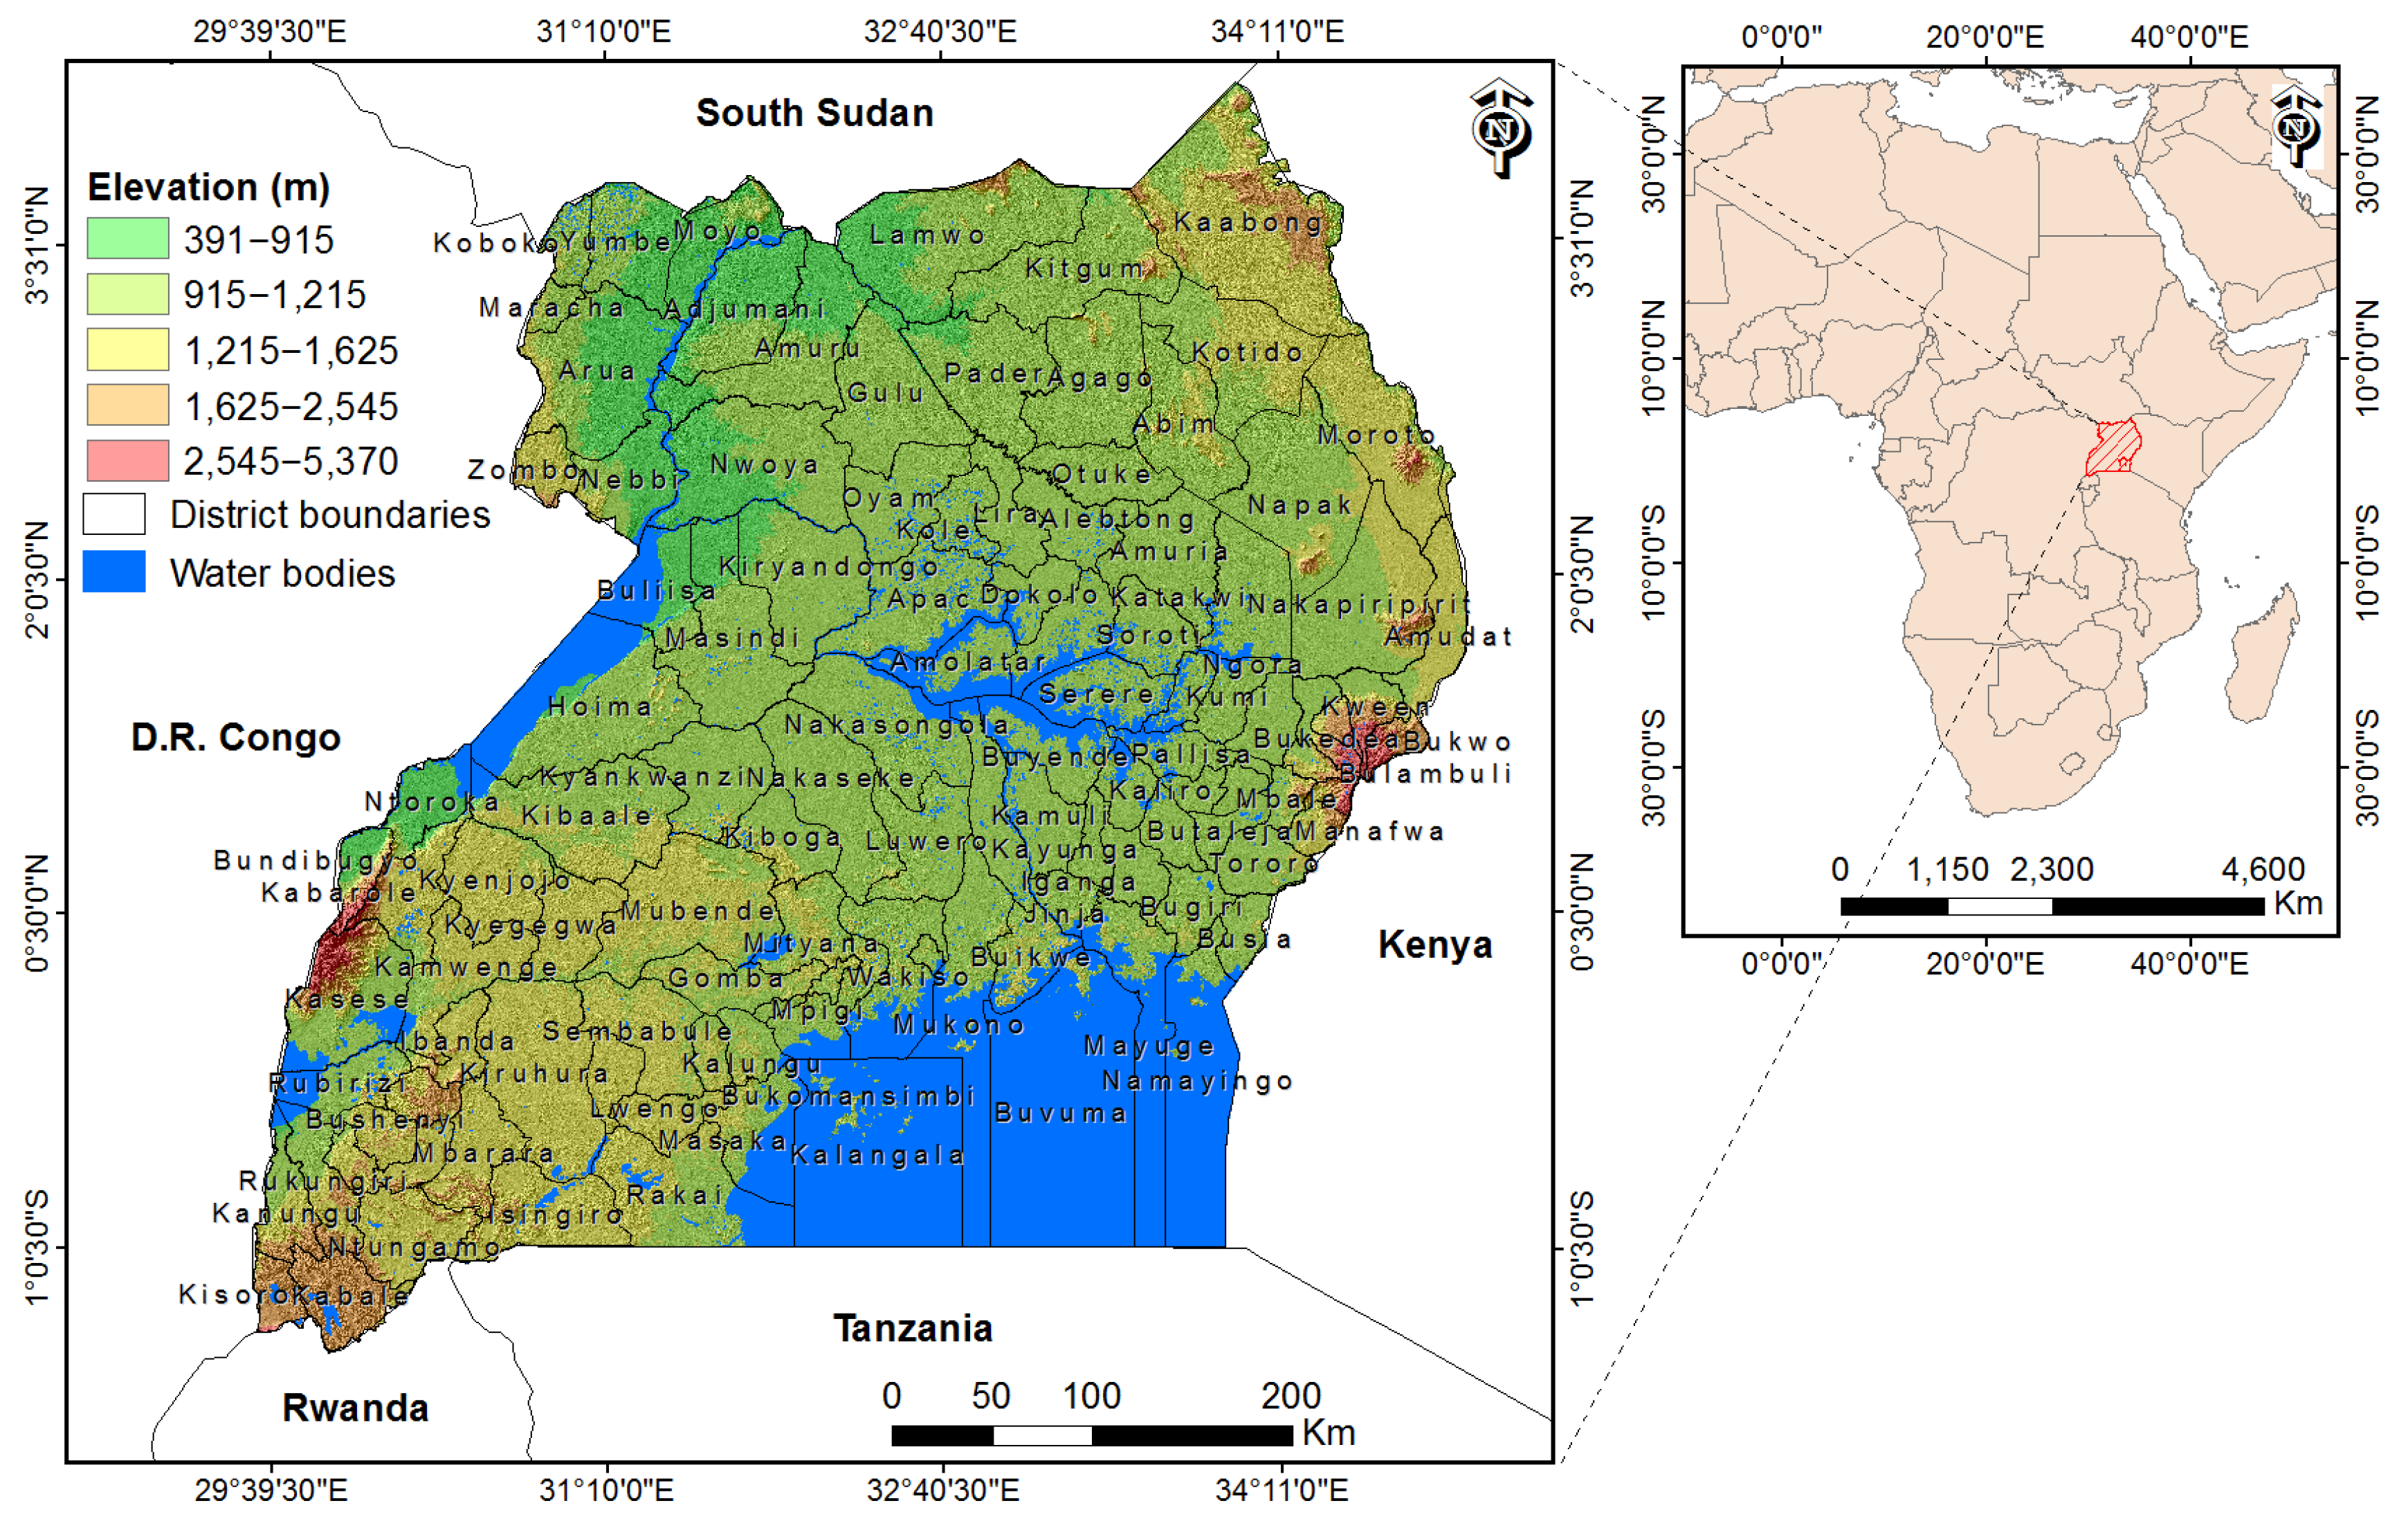 soil and vegetation regions assessment Natural vegetation in semi-arid regions is characterized by three ground features, in addition to bare surfaces - biological soil crusts, annuals, and perennials these three elements have.